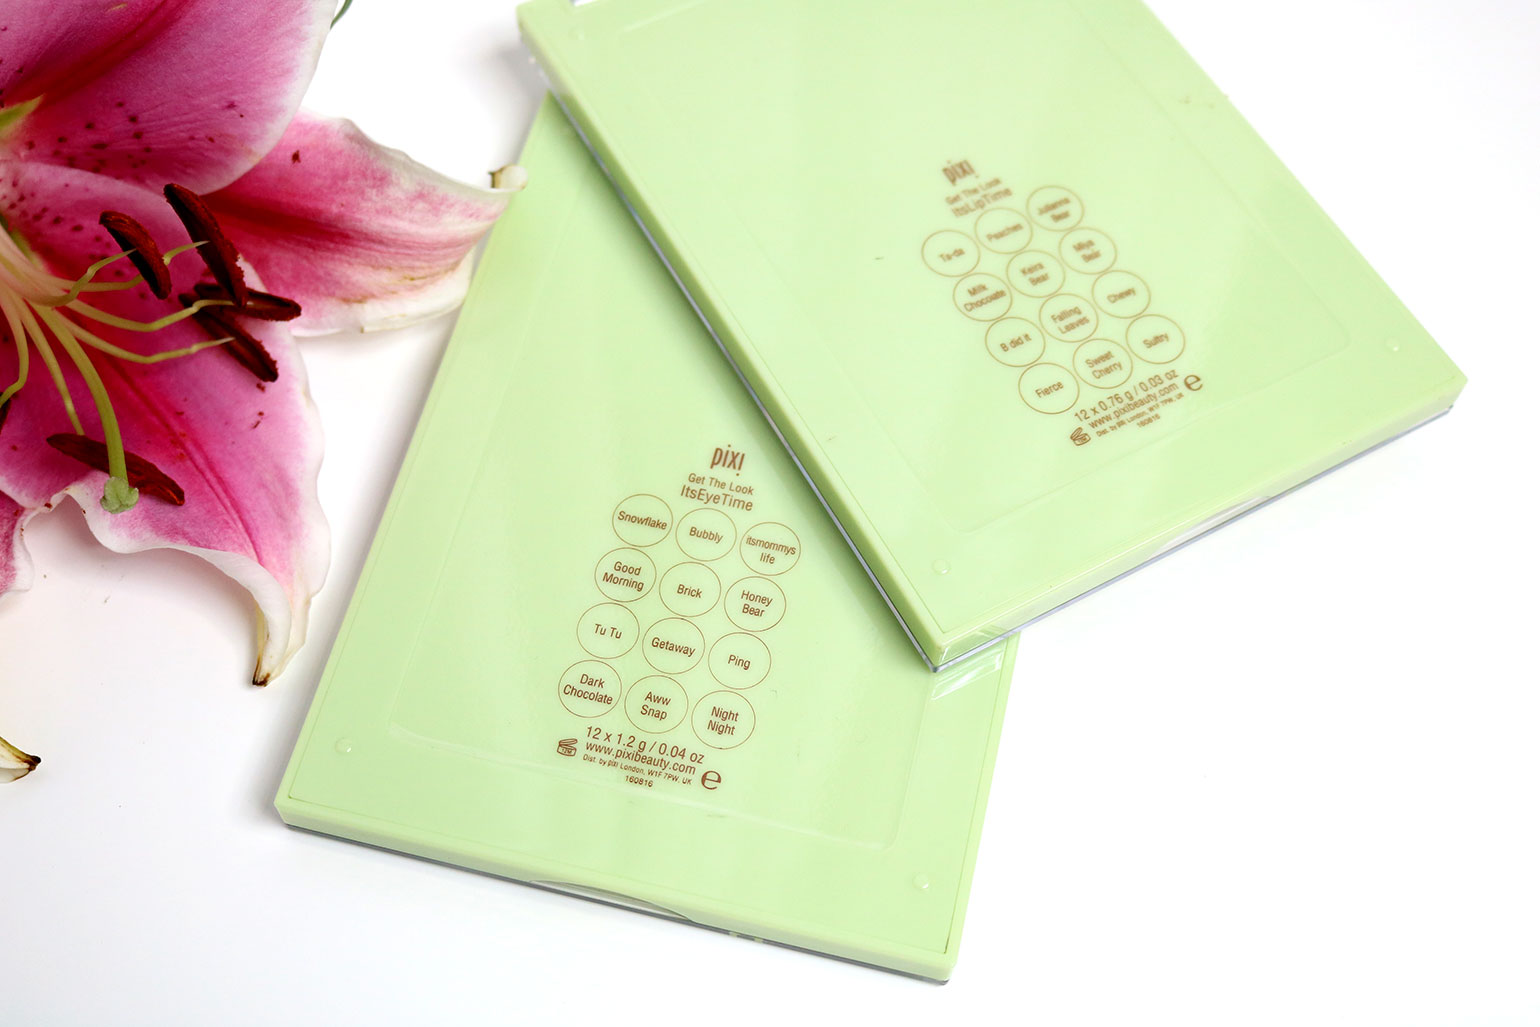 8 Pixibeauty - Pixi by Petra - ItsJudyTime Palettes Review Swatches - Gen-zel.com